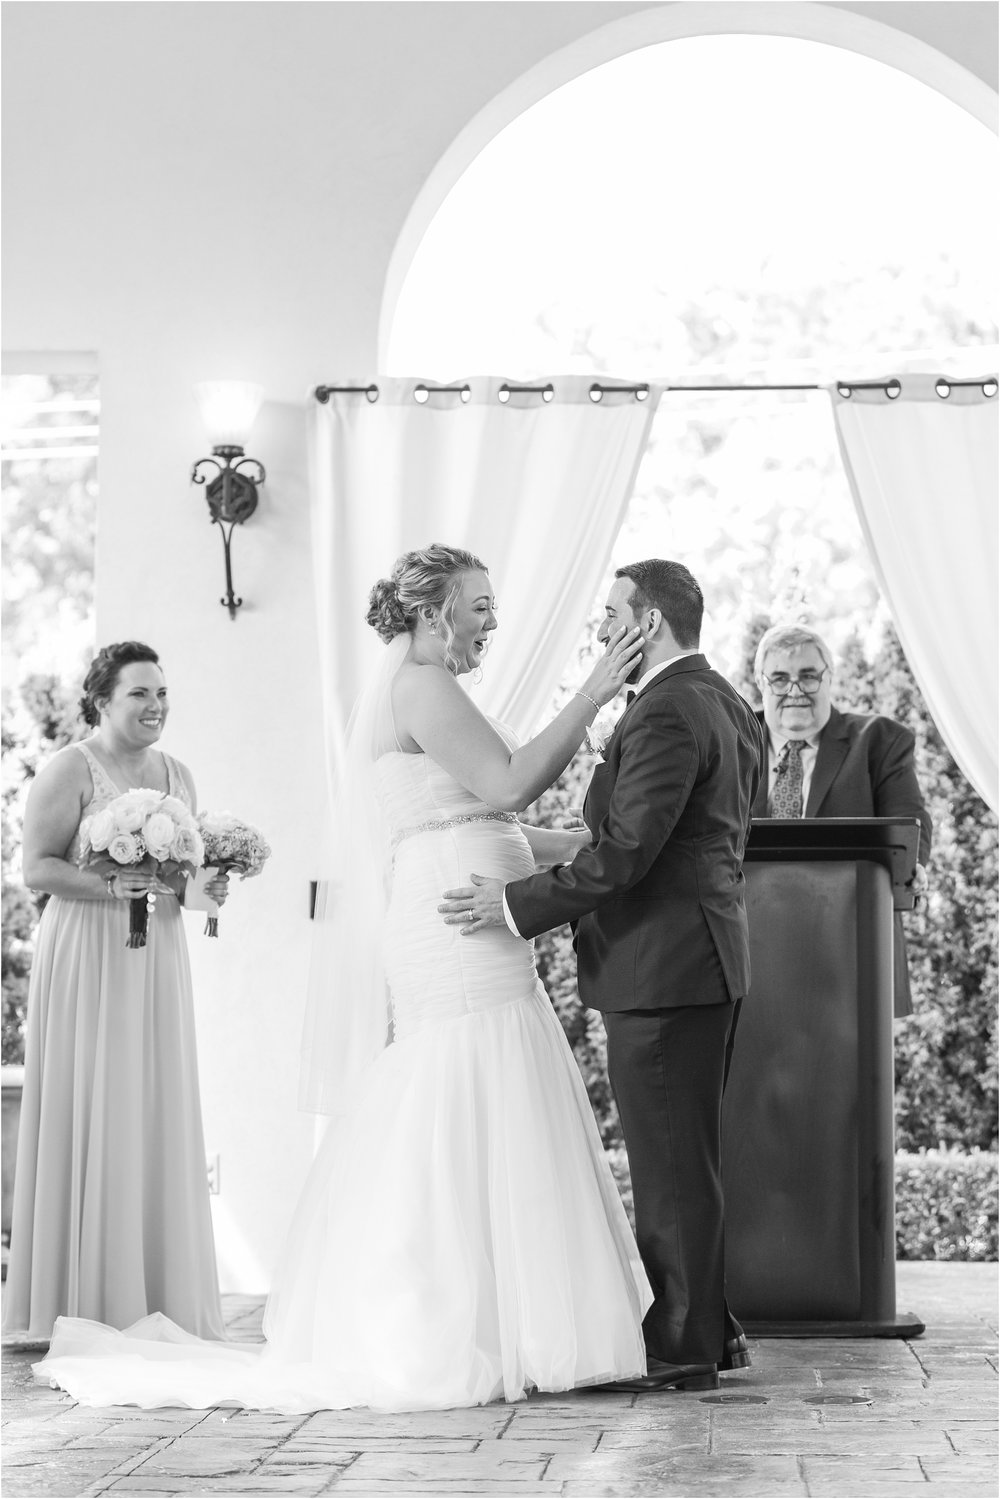 joyful-and-candid-navy-blush-wedding-photos-at-crystal-gardens-in-howell-mi-by-courtney-carolyn-photography_0055.jpg